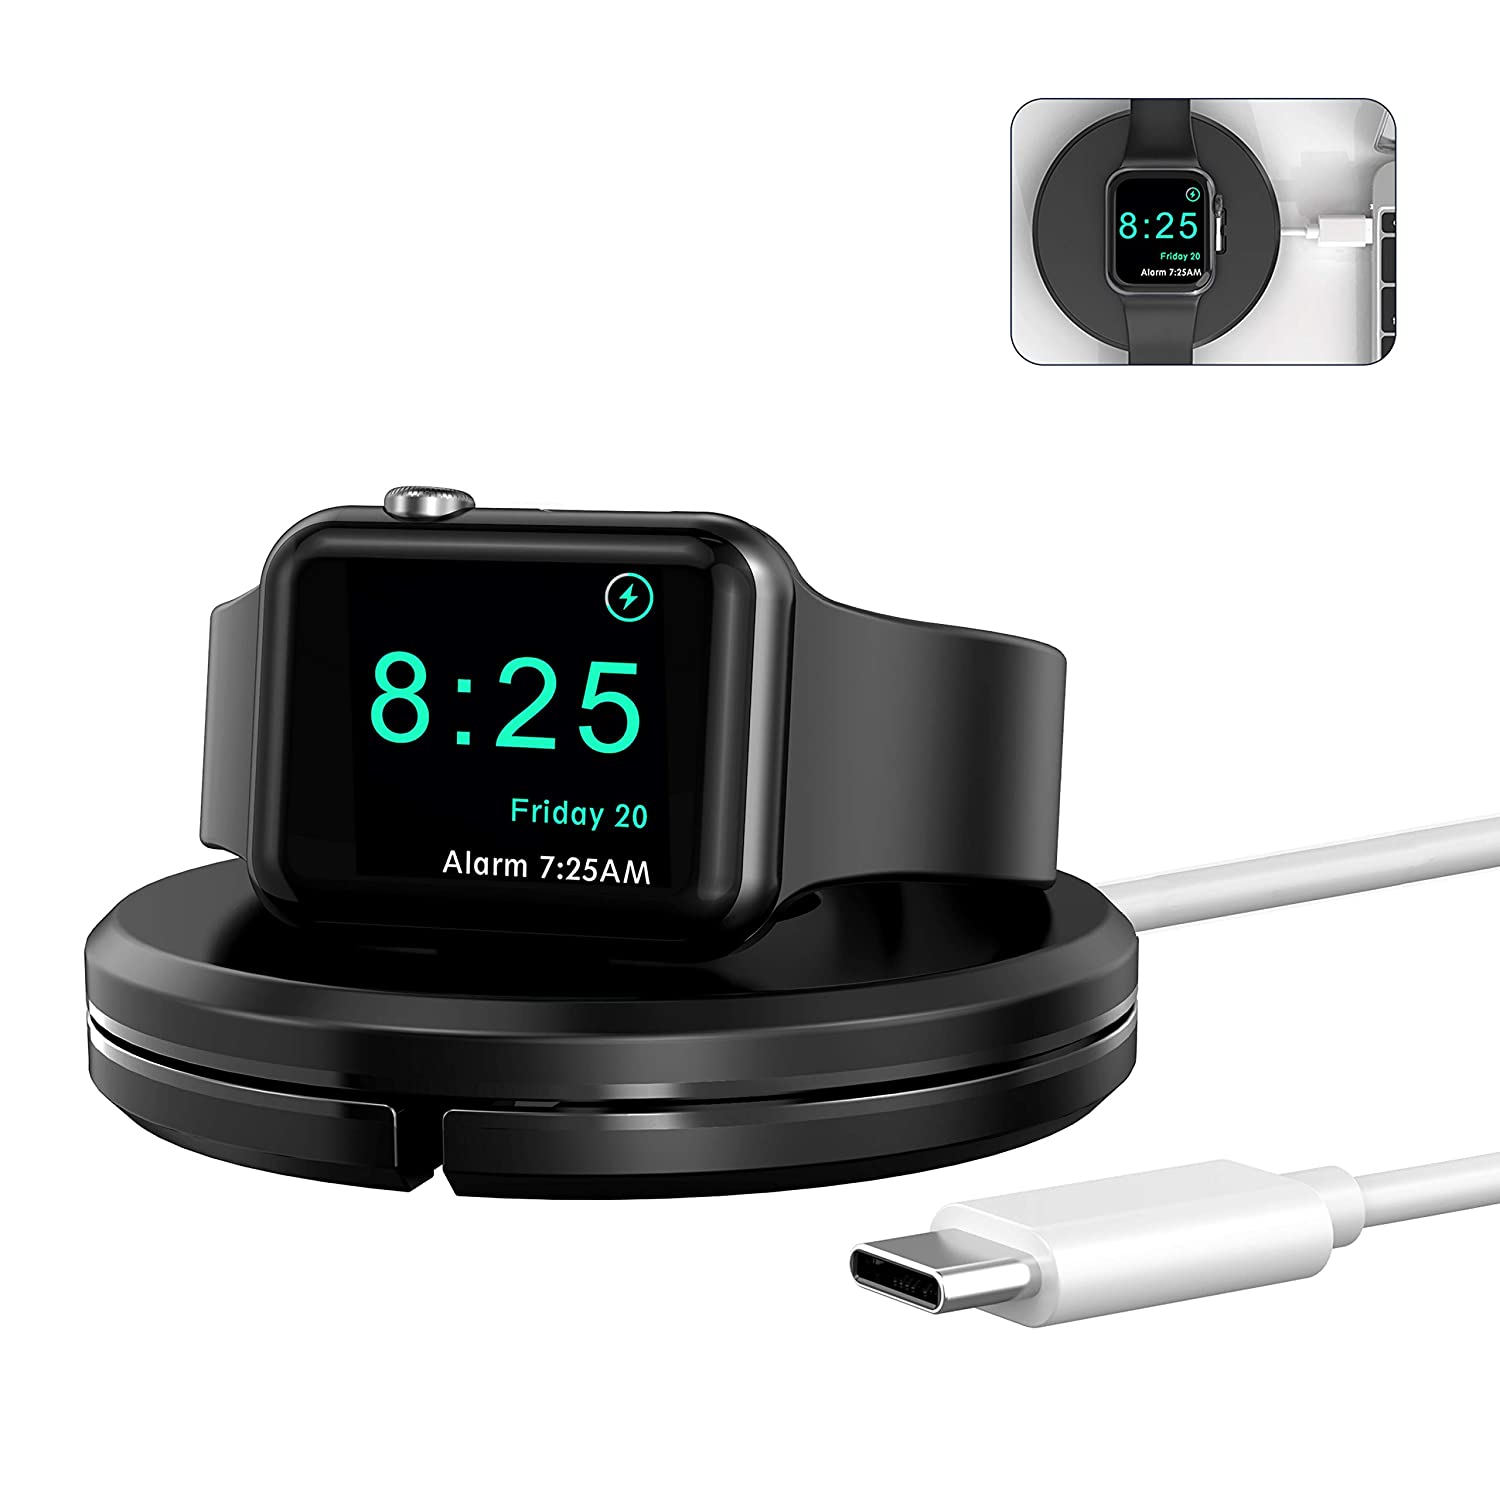 OIFEN Charging Stand [Charger Included] for Apple Watch, Portable iWatch Charger Stand with Charging Cable, Magnetic Wireless Charging Dock Compatible with Apple Watch SE Series 6/5/4/3/2/1 (Black)